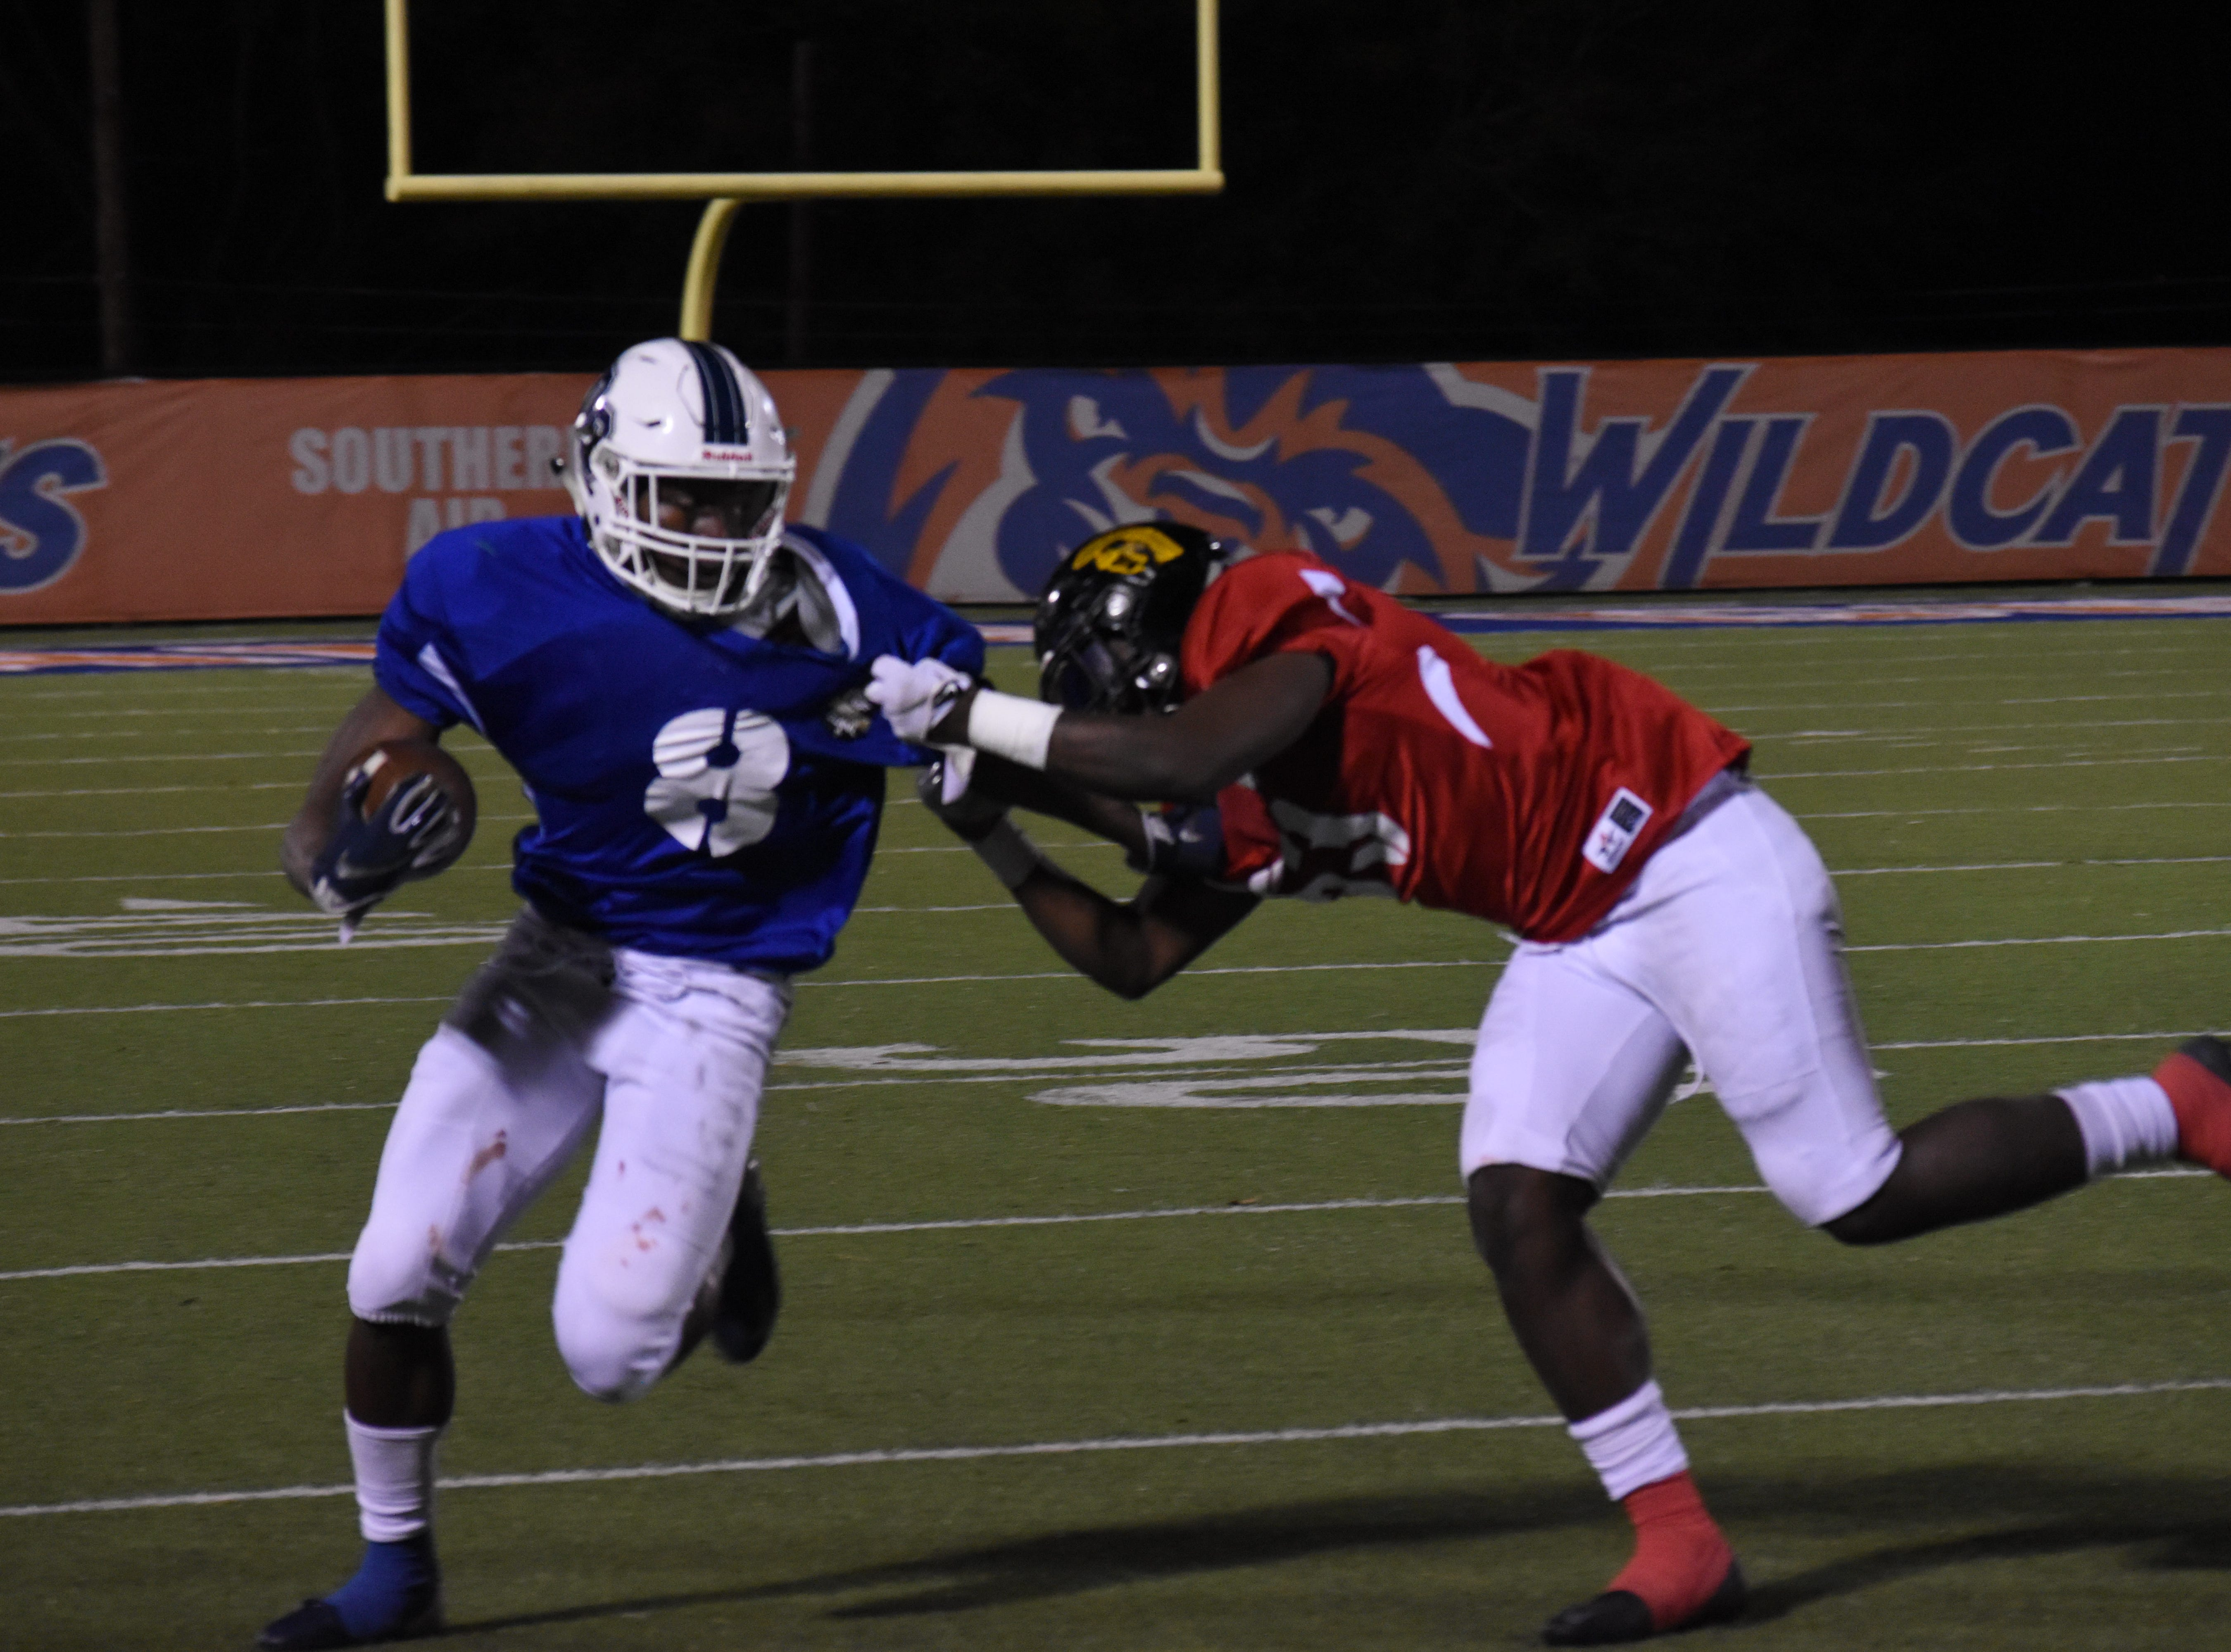 The Inaugural Louisiana Gridiron Football Bowl Game was held at Wildcat Stadium on the Louisiana College in Pineville Friday, Dec. 28, 2018. The game featured high school players from around the state including those from Alexandria Senior High School, Pineville High School, Buckeye High School, Oakdale High School, Jena High School, Vidalia High School, Leesville High School, Oberlin High School, Many High School, Natchitoches Central High School and Ferriday High School. Dennis Dunn, Pineville High School head football coach, was one of the head coaches. Among local players were Ben West and Jacob Sylvia of Pineville High School; Brandon Quinney and Cayden Reynolds of Alexandria Senior High School; and Cade Foster of Buckeye High School.Participation in the game was by invitation only.